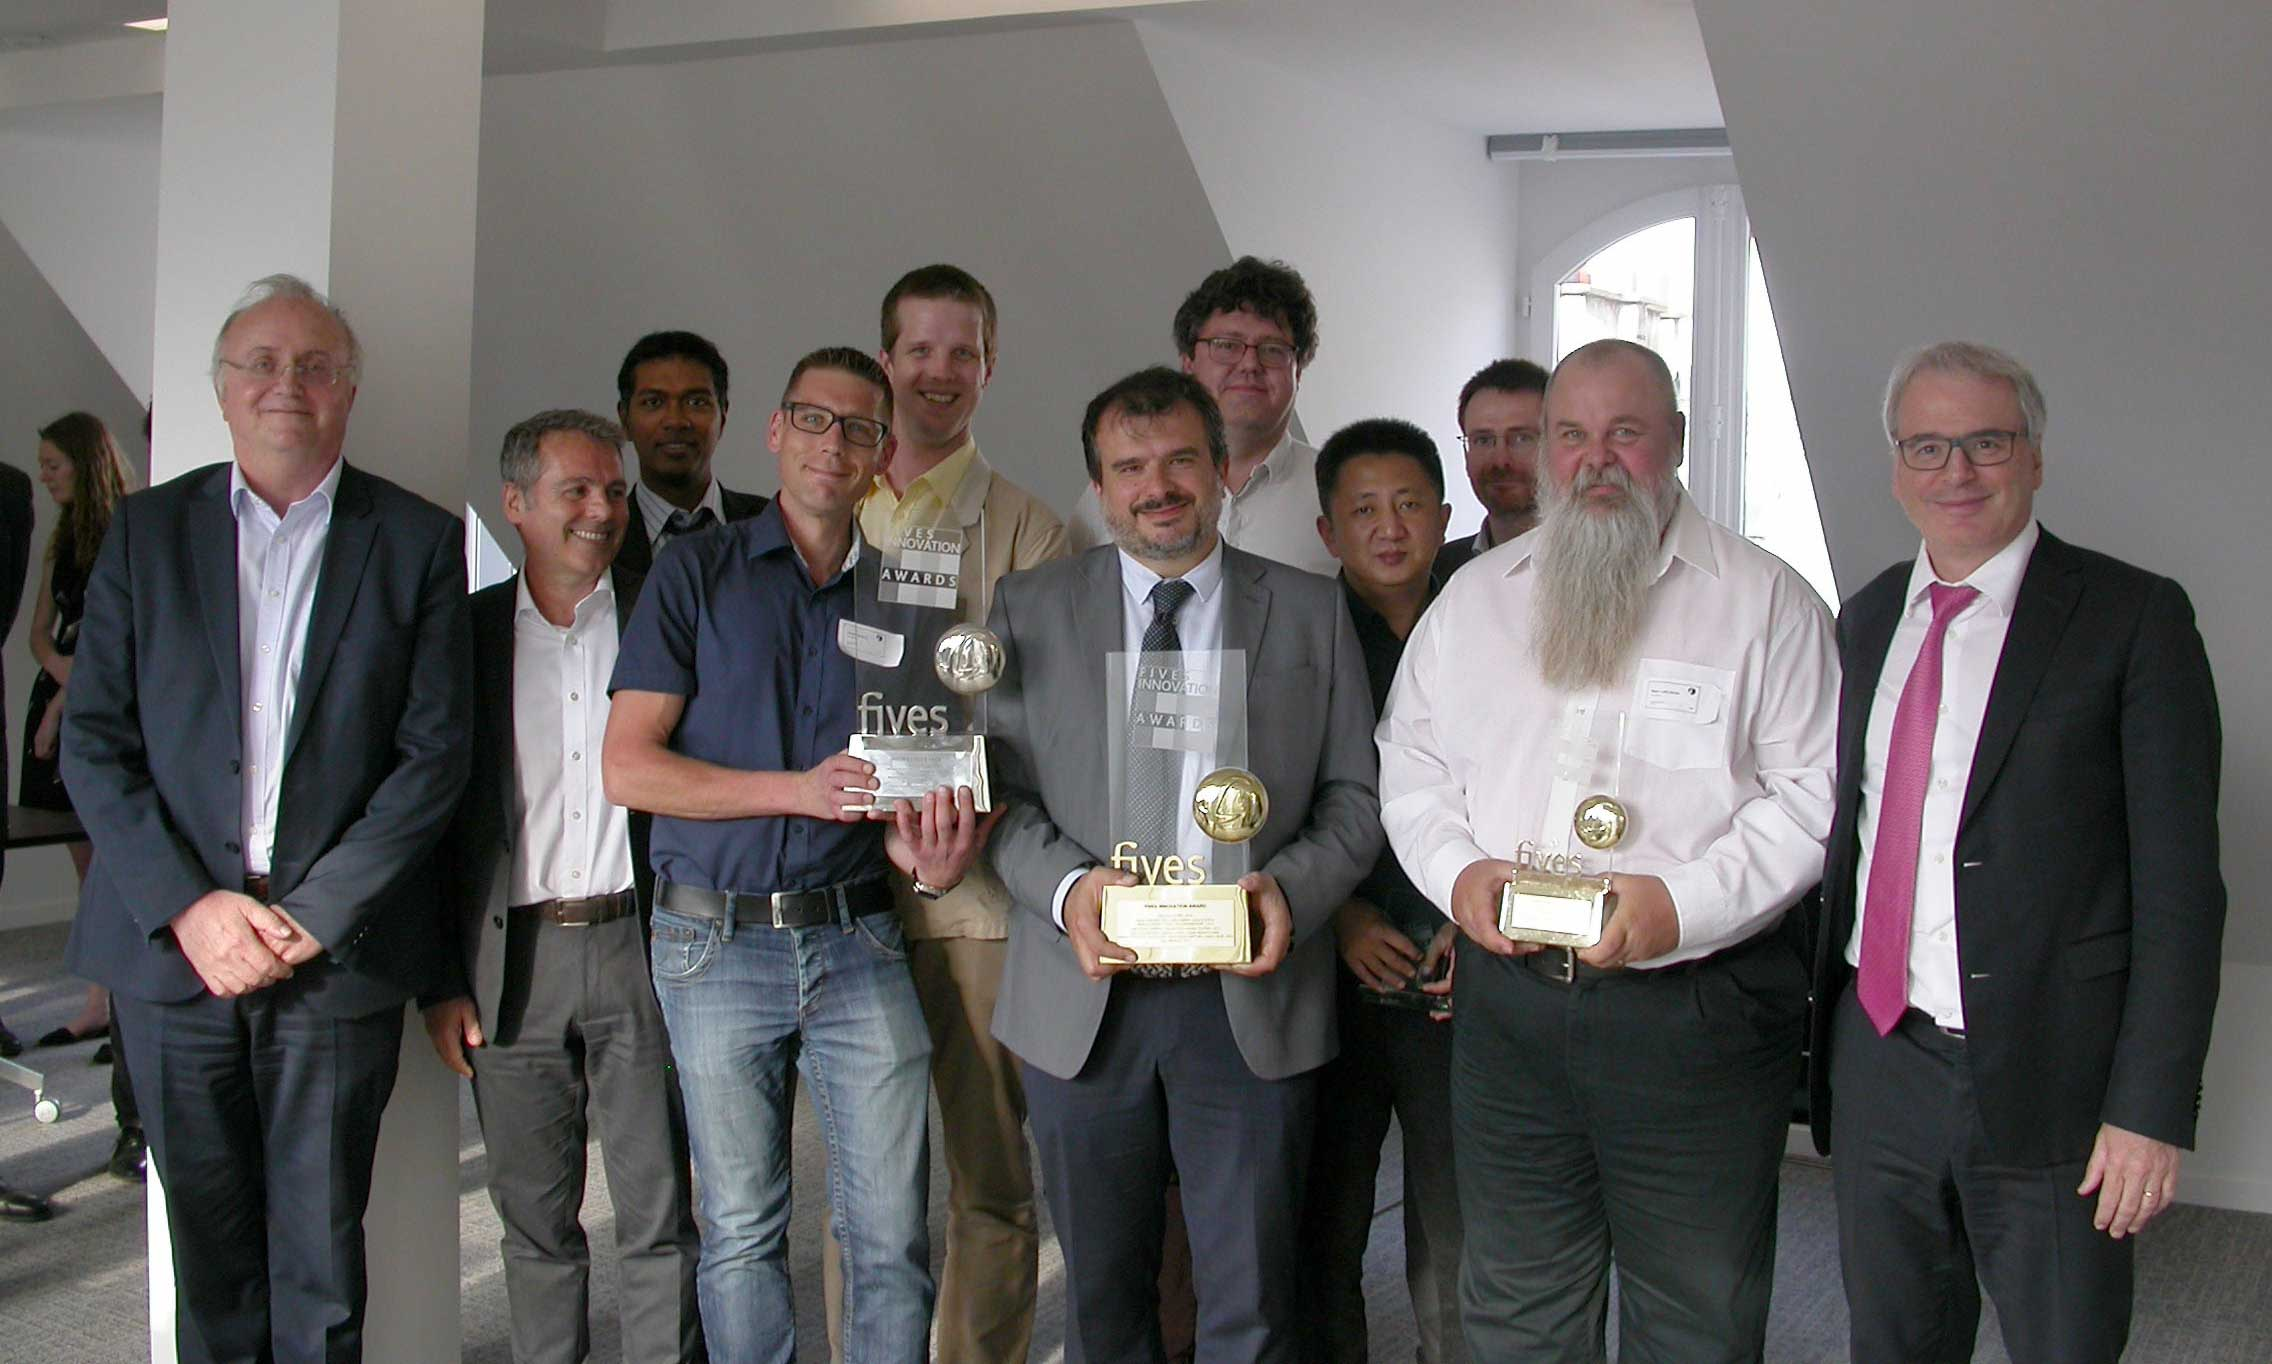 Fives-Nordon Fives-Innovation-Awards-FIVES Fives in Piping Solutions